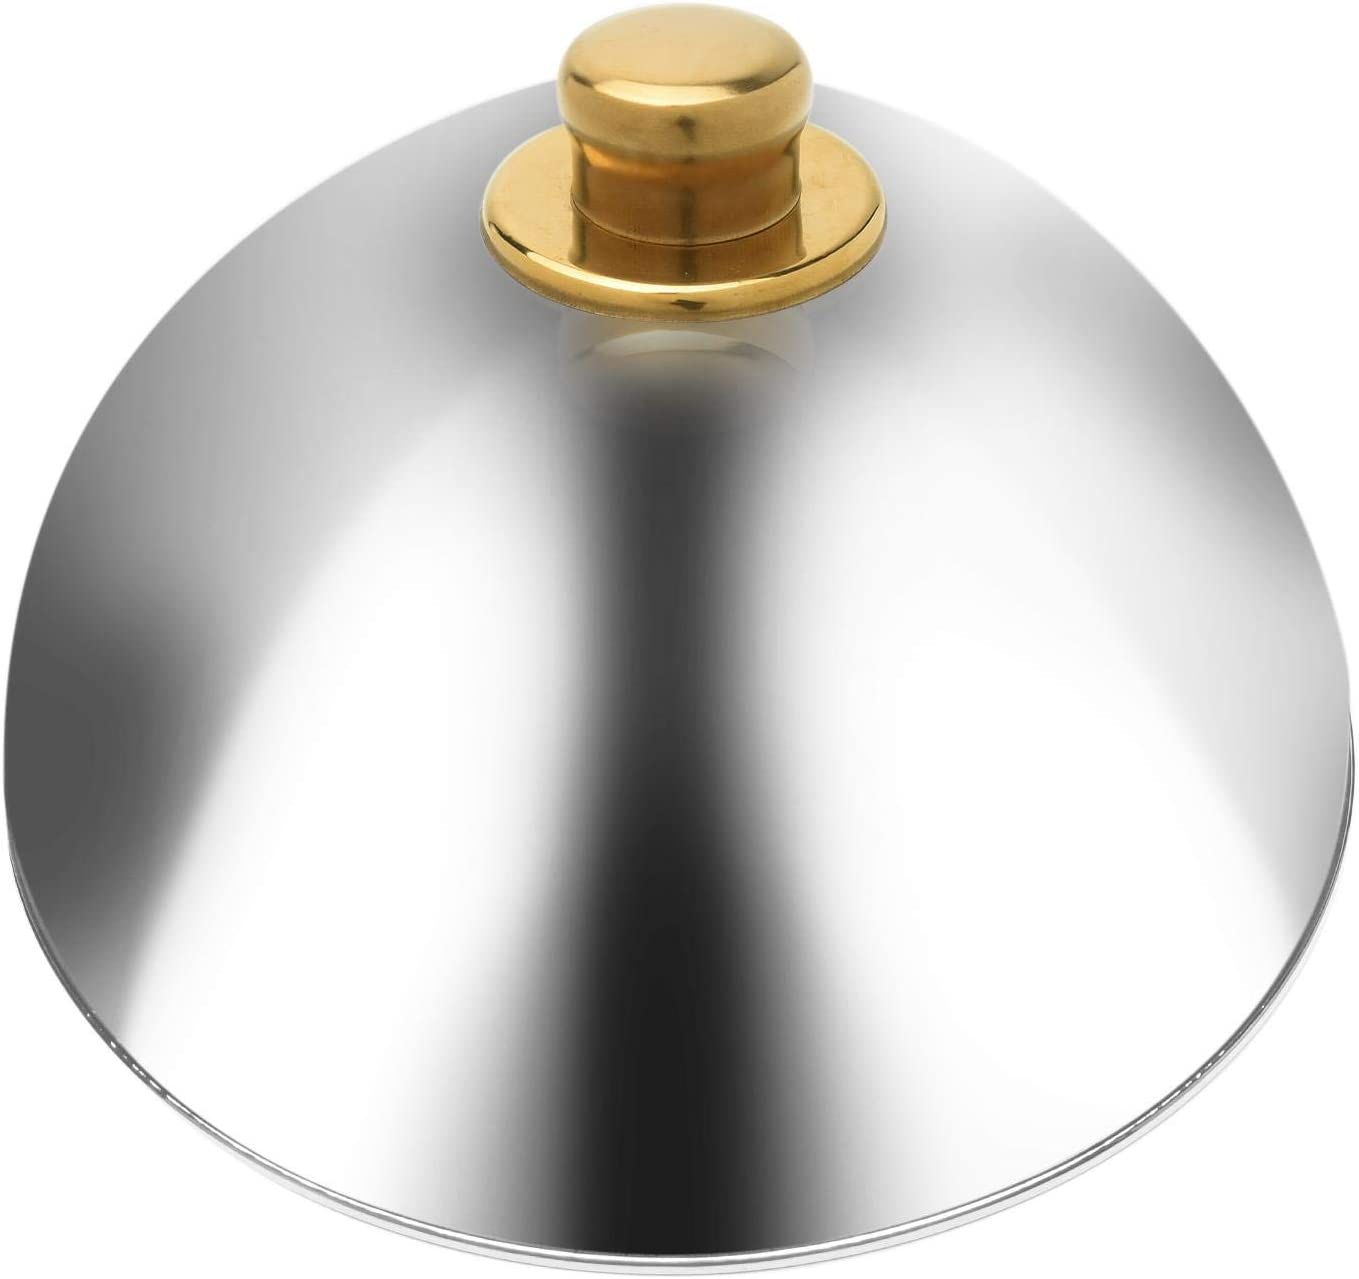 Food Dome Cover, 10inch Melting Dome Plate Covers, Stainless Steel Cake Tent Cover Dome with Anti-scald Knob for Home Kitchen Pot Lid